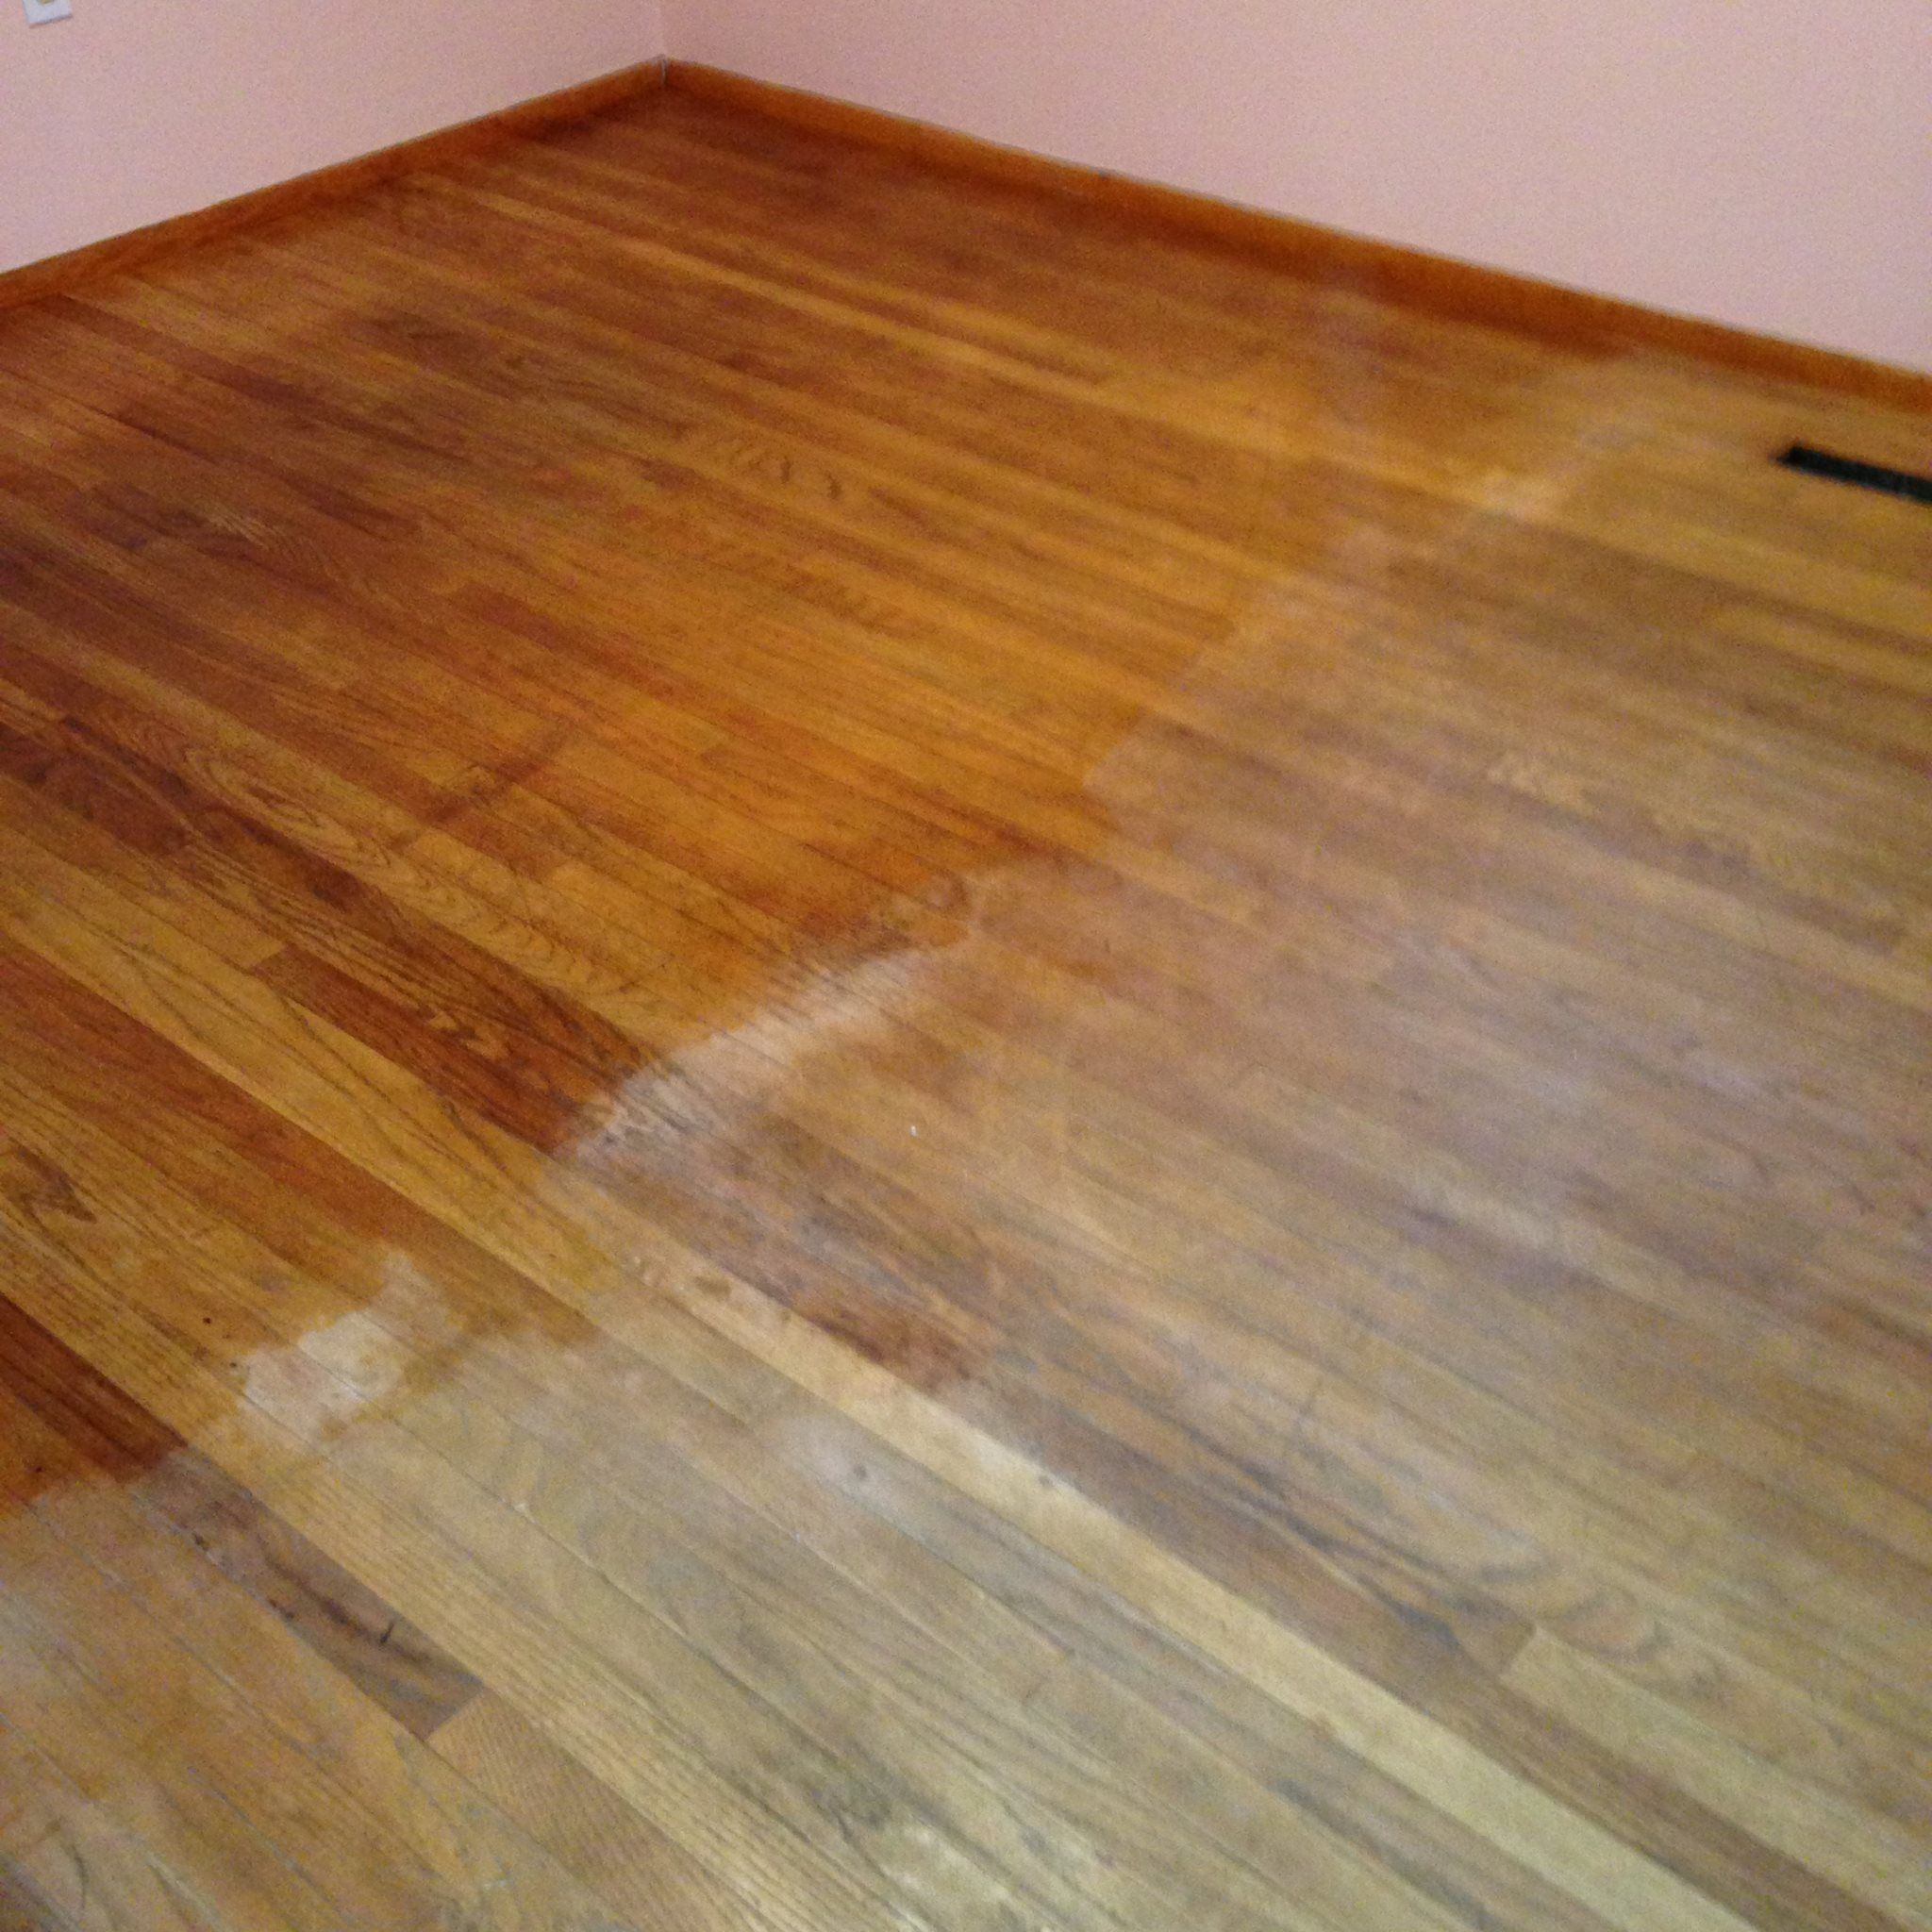 15 Wood Floor Hacks Every Homeowner Needs To Know Wood Floor